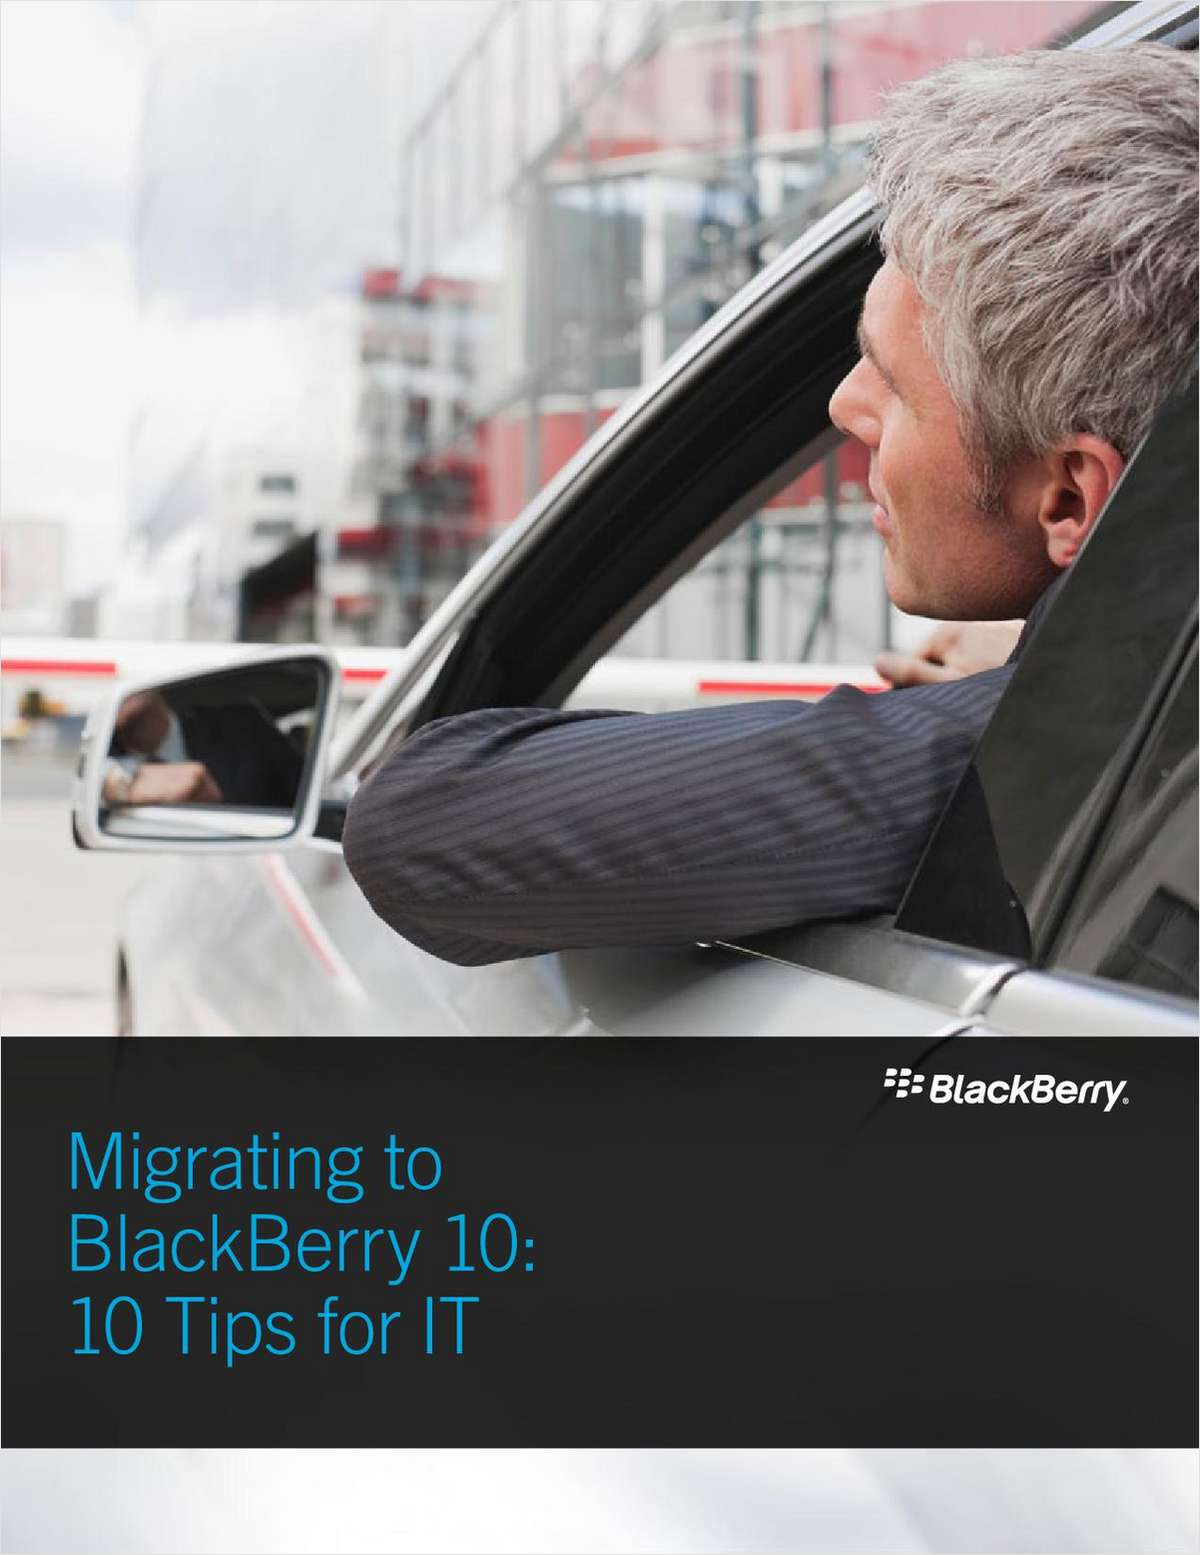 Migrating to BlackBerry 10: 10 Tips for IT